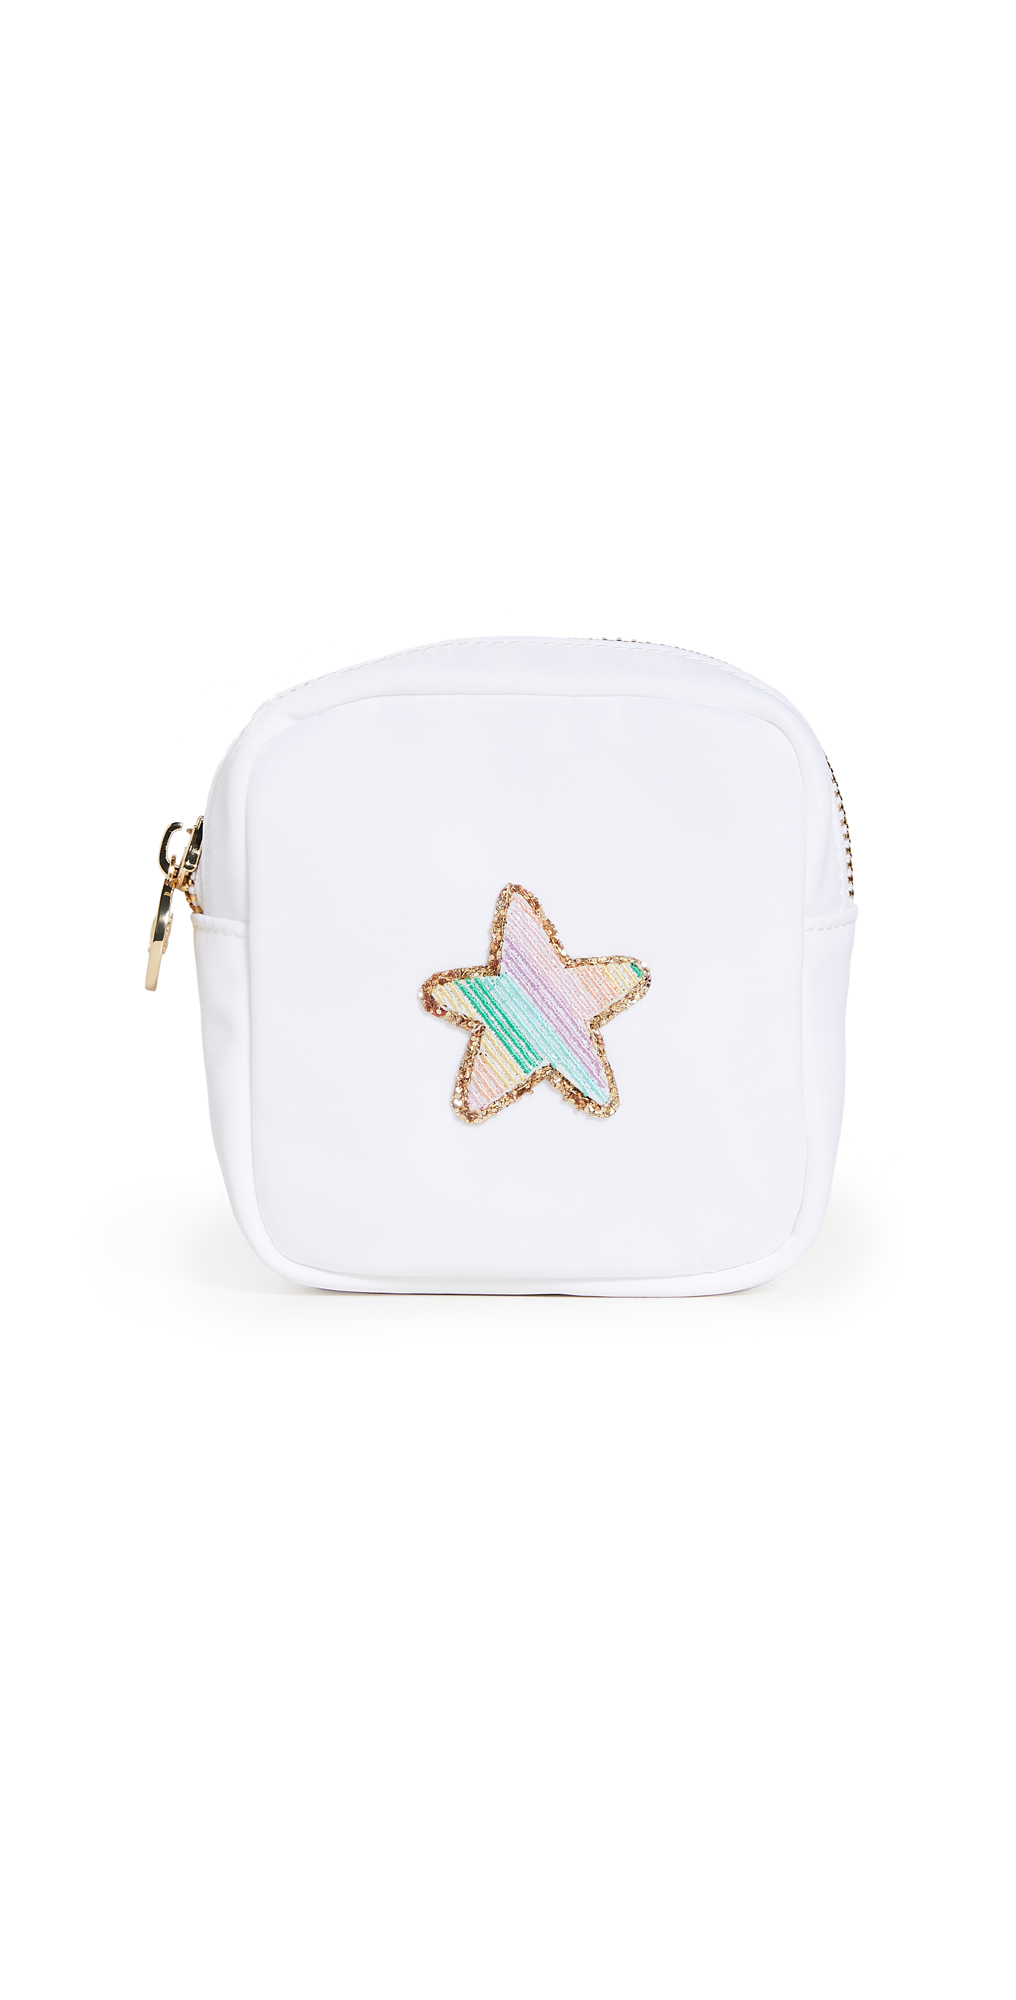 Stoney Clover Lane Blanc Mini Pouch with Rainbow Glitter Star Patch